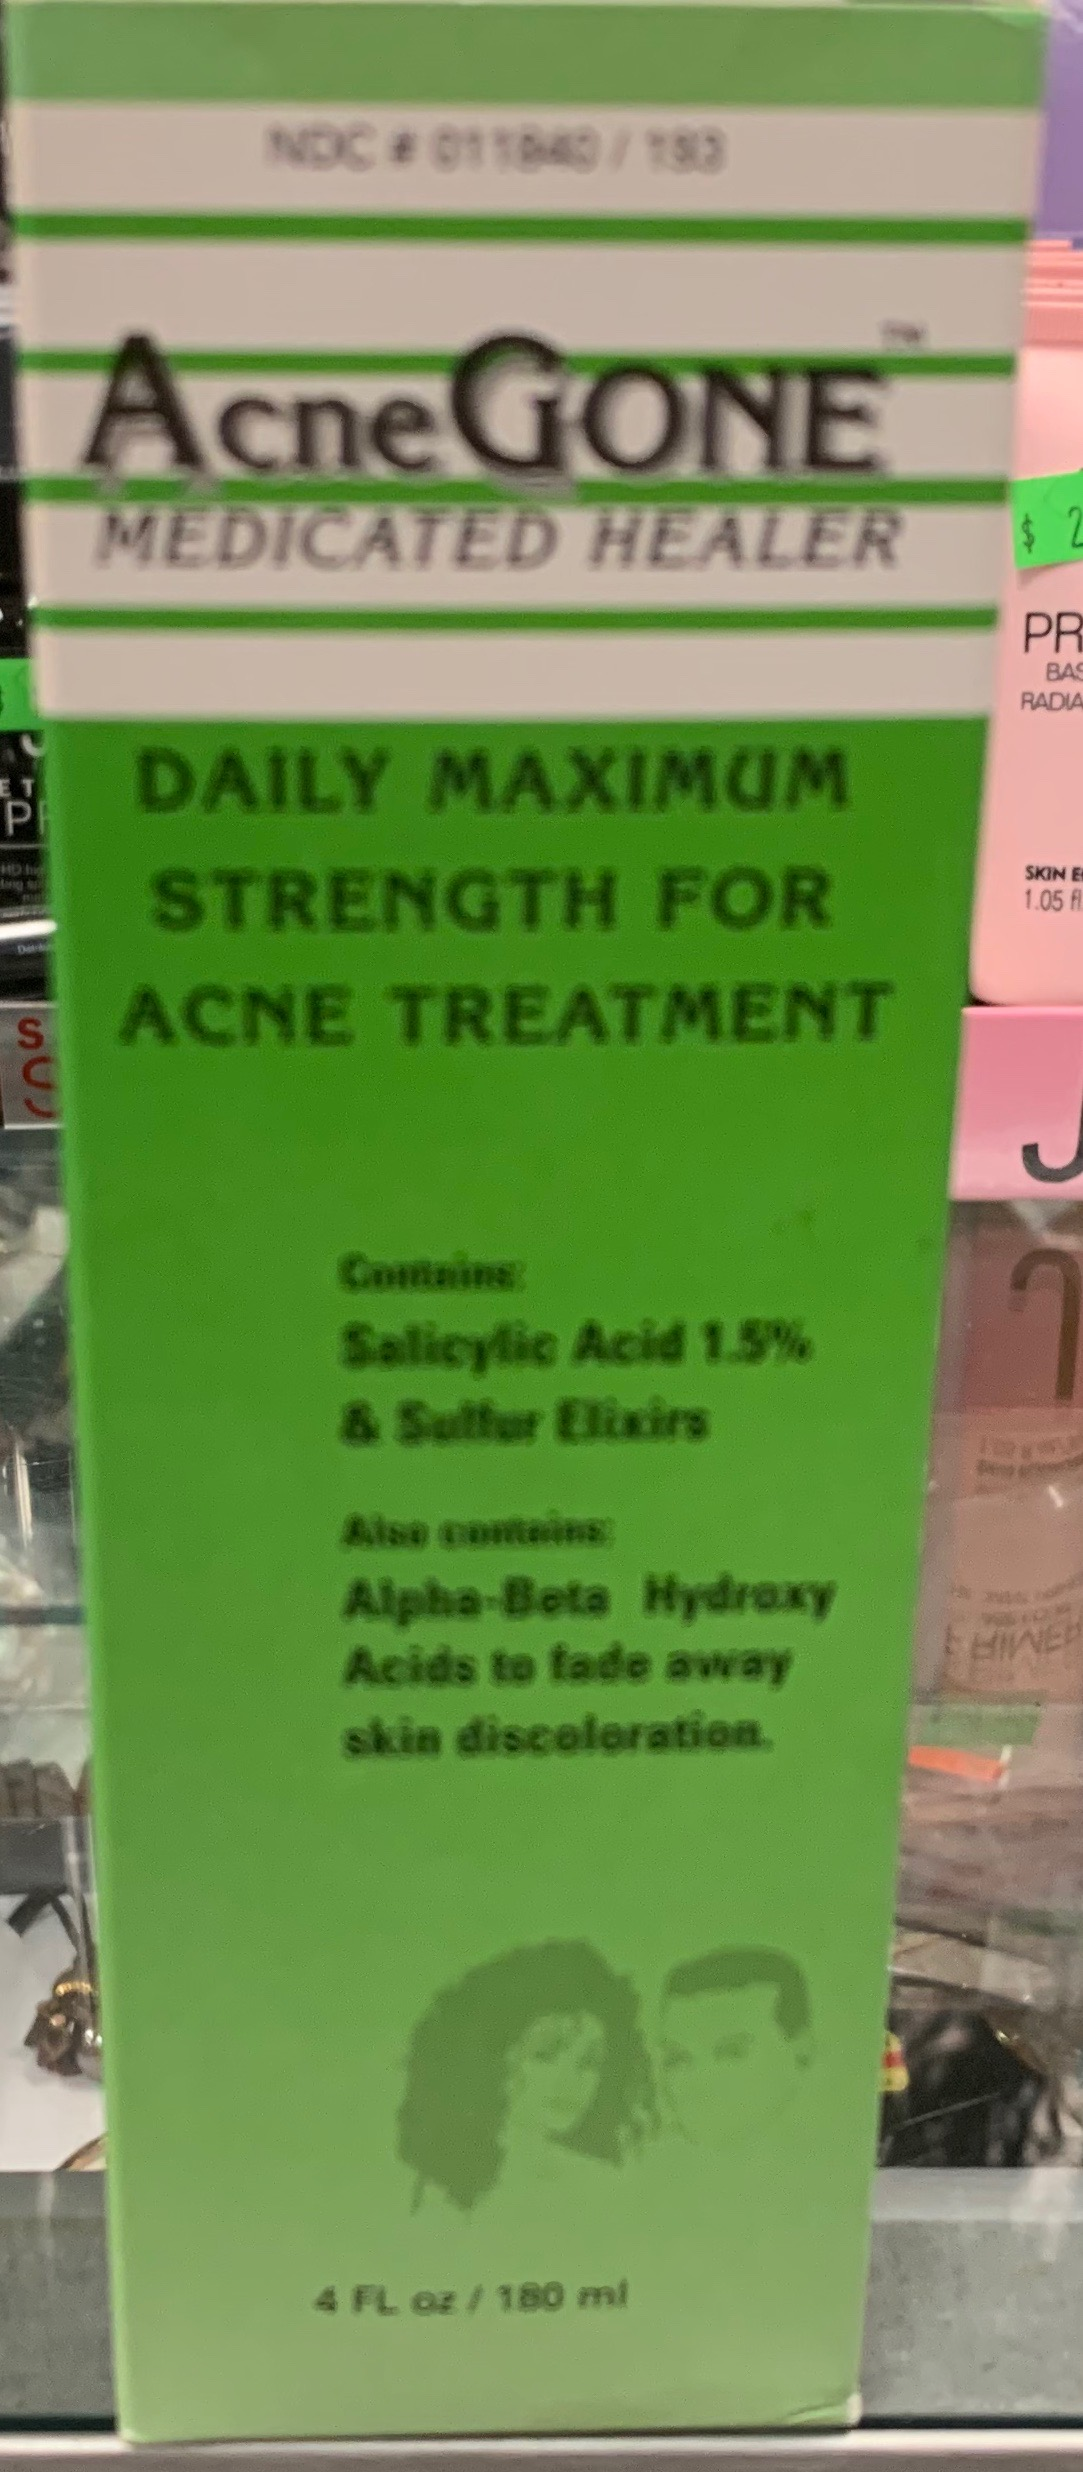 Acne Gone Medicated Healer